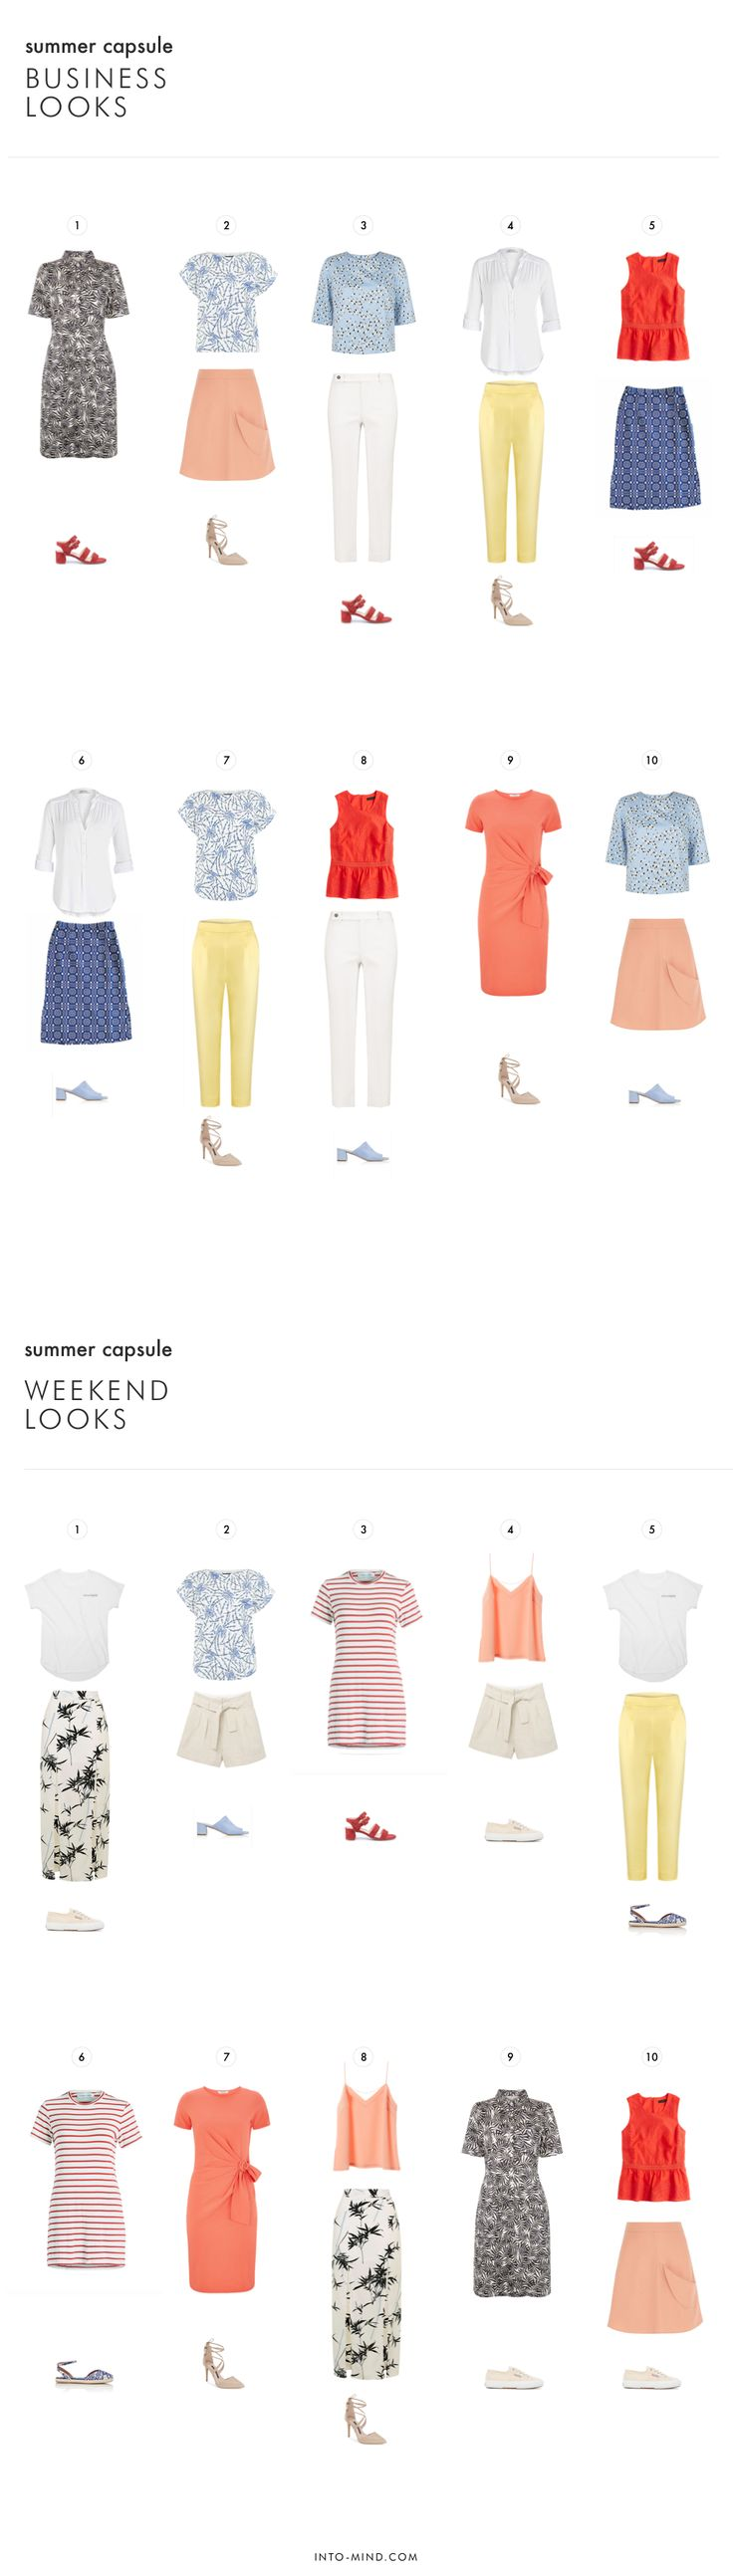 20 Pieces 20 Outfits: Summer Capsule Wardrobe for Work and Play